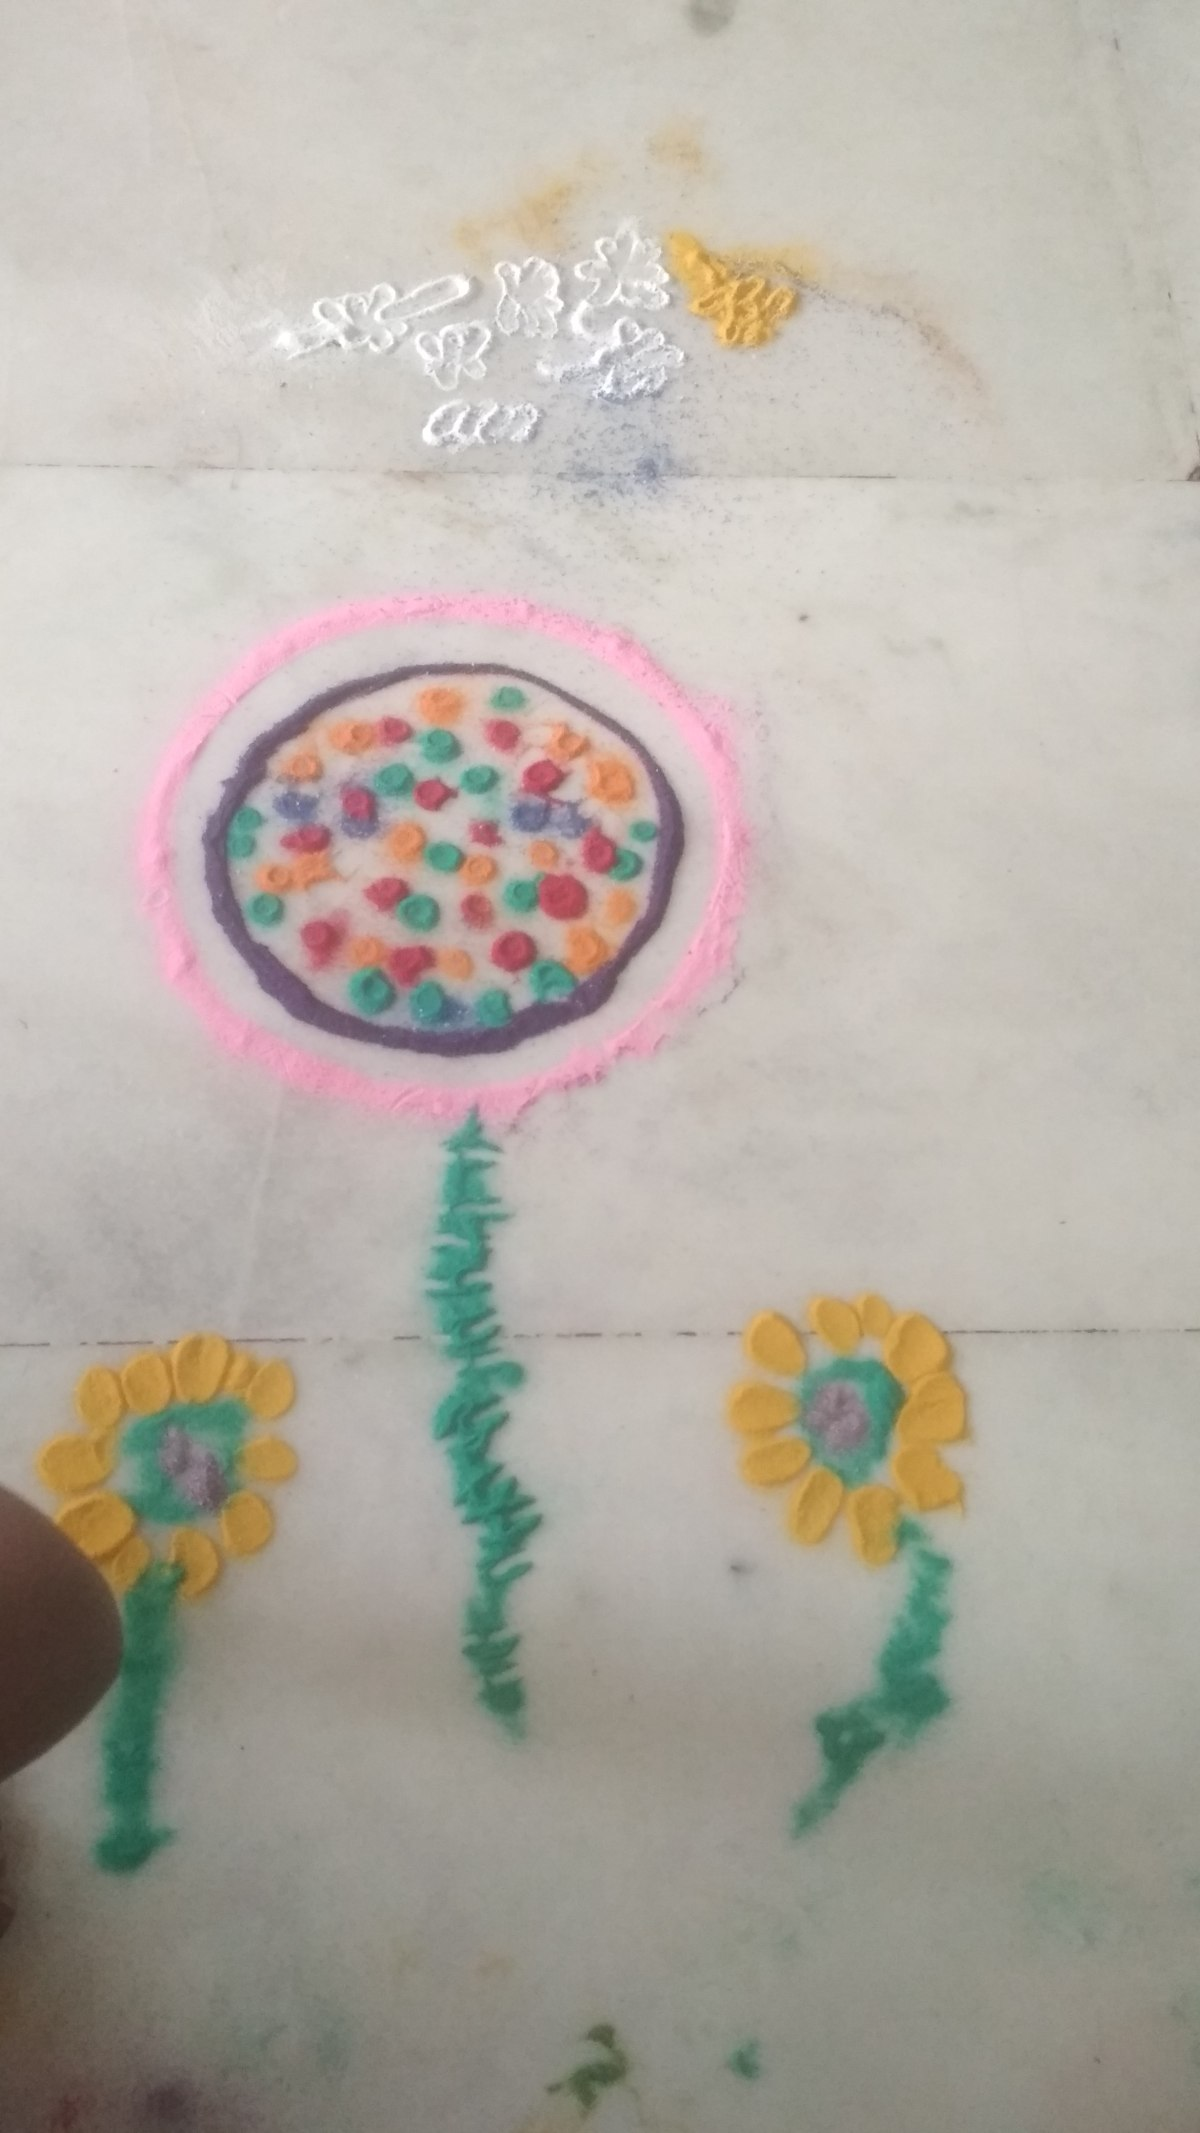 Rangoli Making With Kids: Fun and Learning